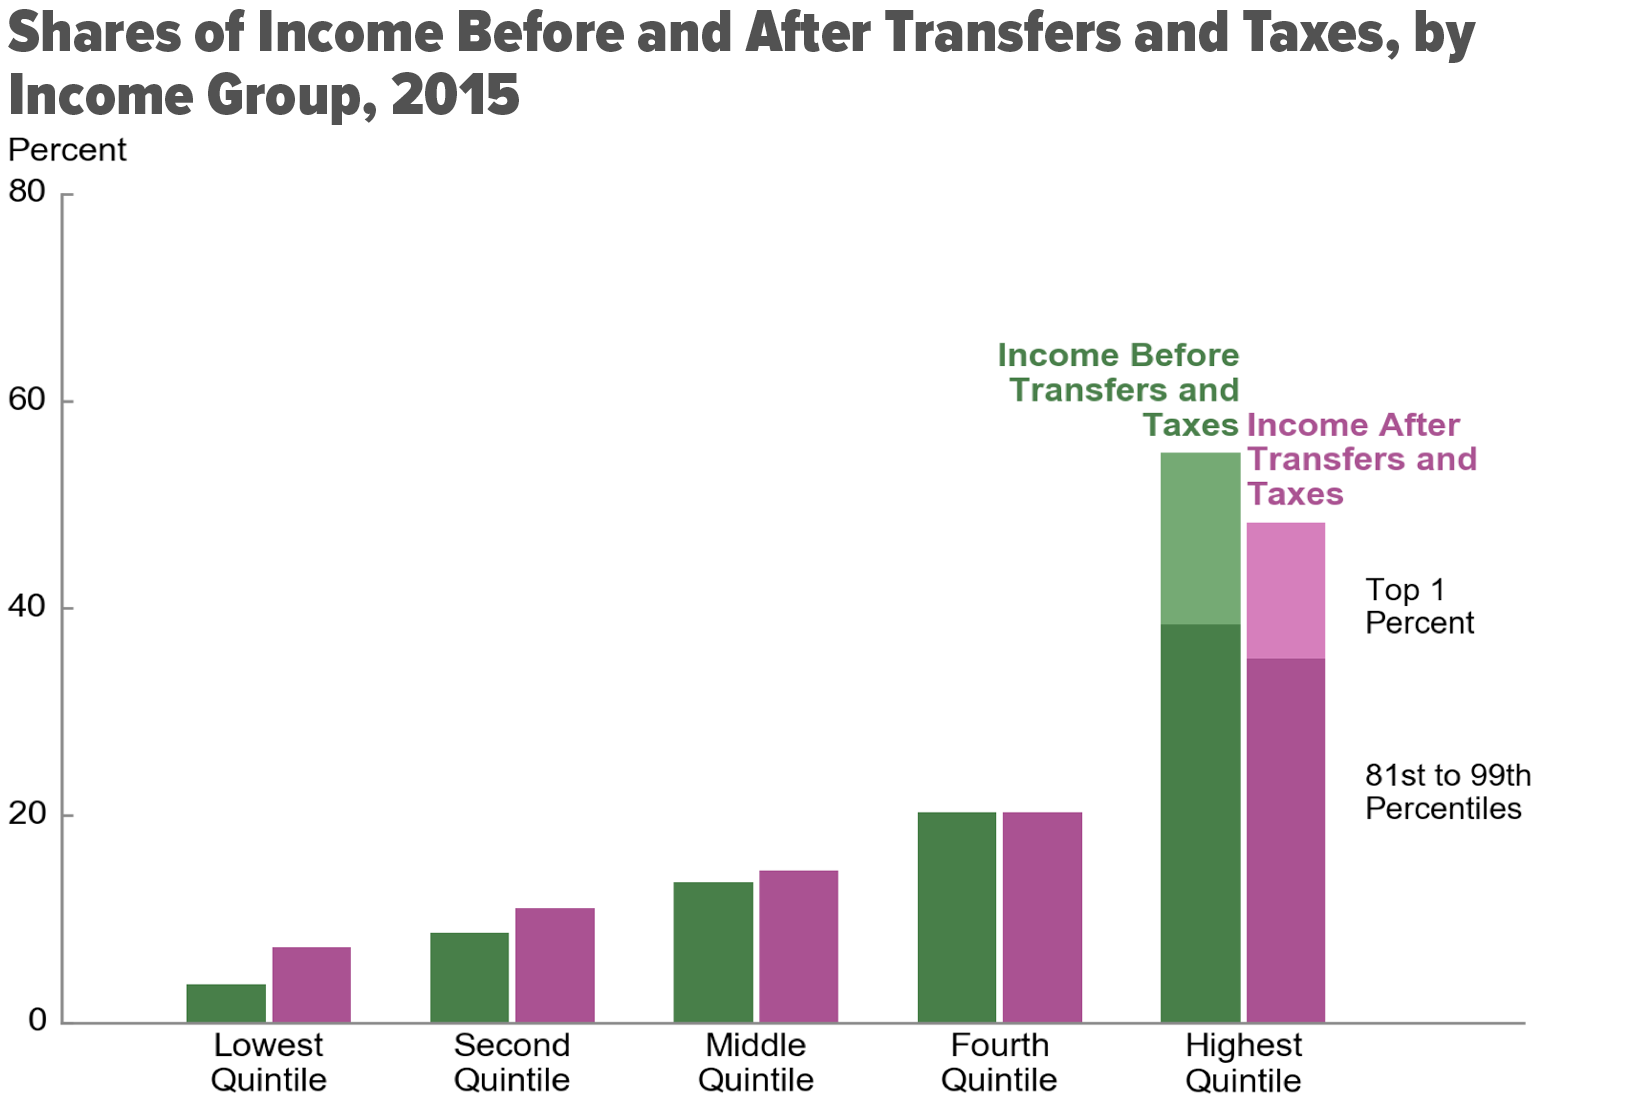 Shares of Income Before and After Transfers and Taxes, by Income Group, 2015